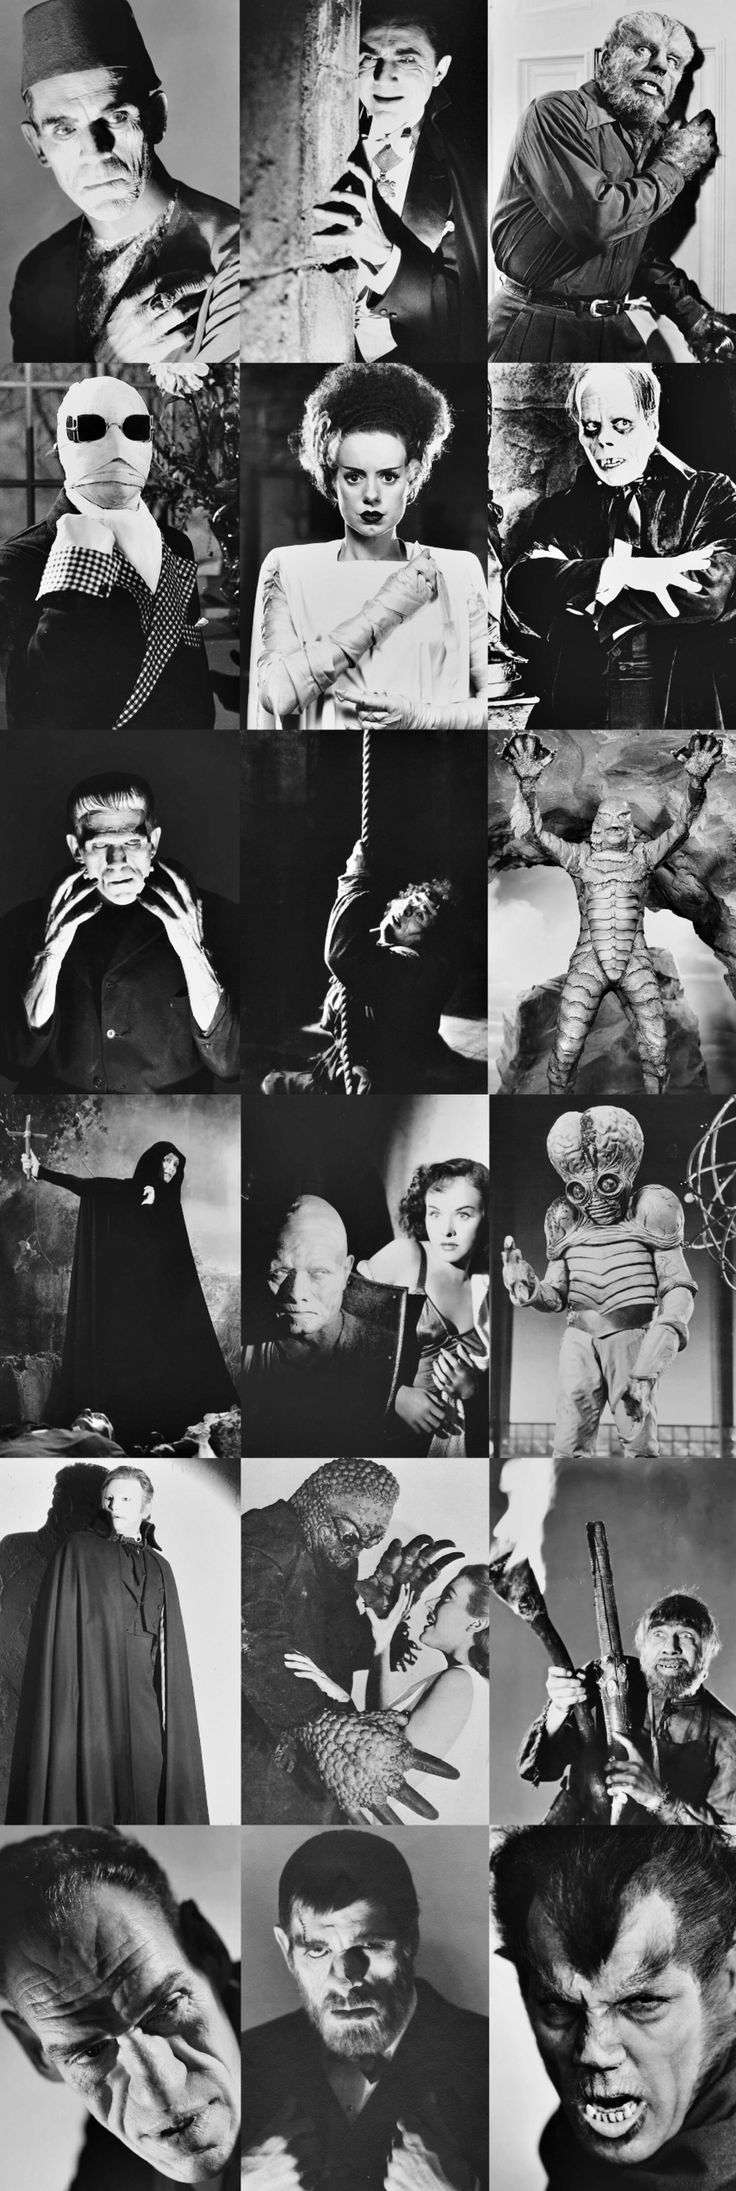 Universal Monsters - I just had to add this...I grew up on these monster movies. My mother and I would stay up until 2am on Saturday nights to watch and 'tape' these movies on channel 46, lol!!! The Great Ones!!!